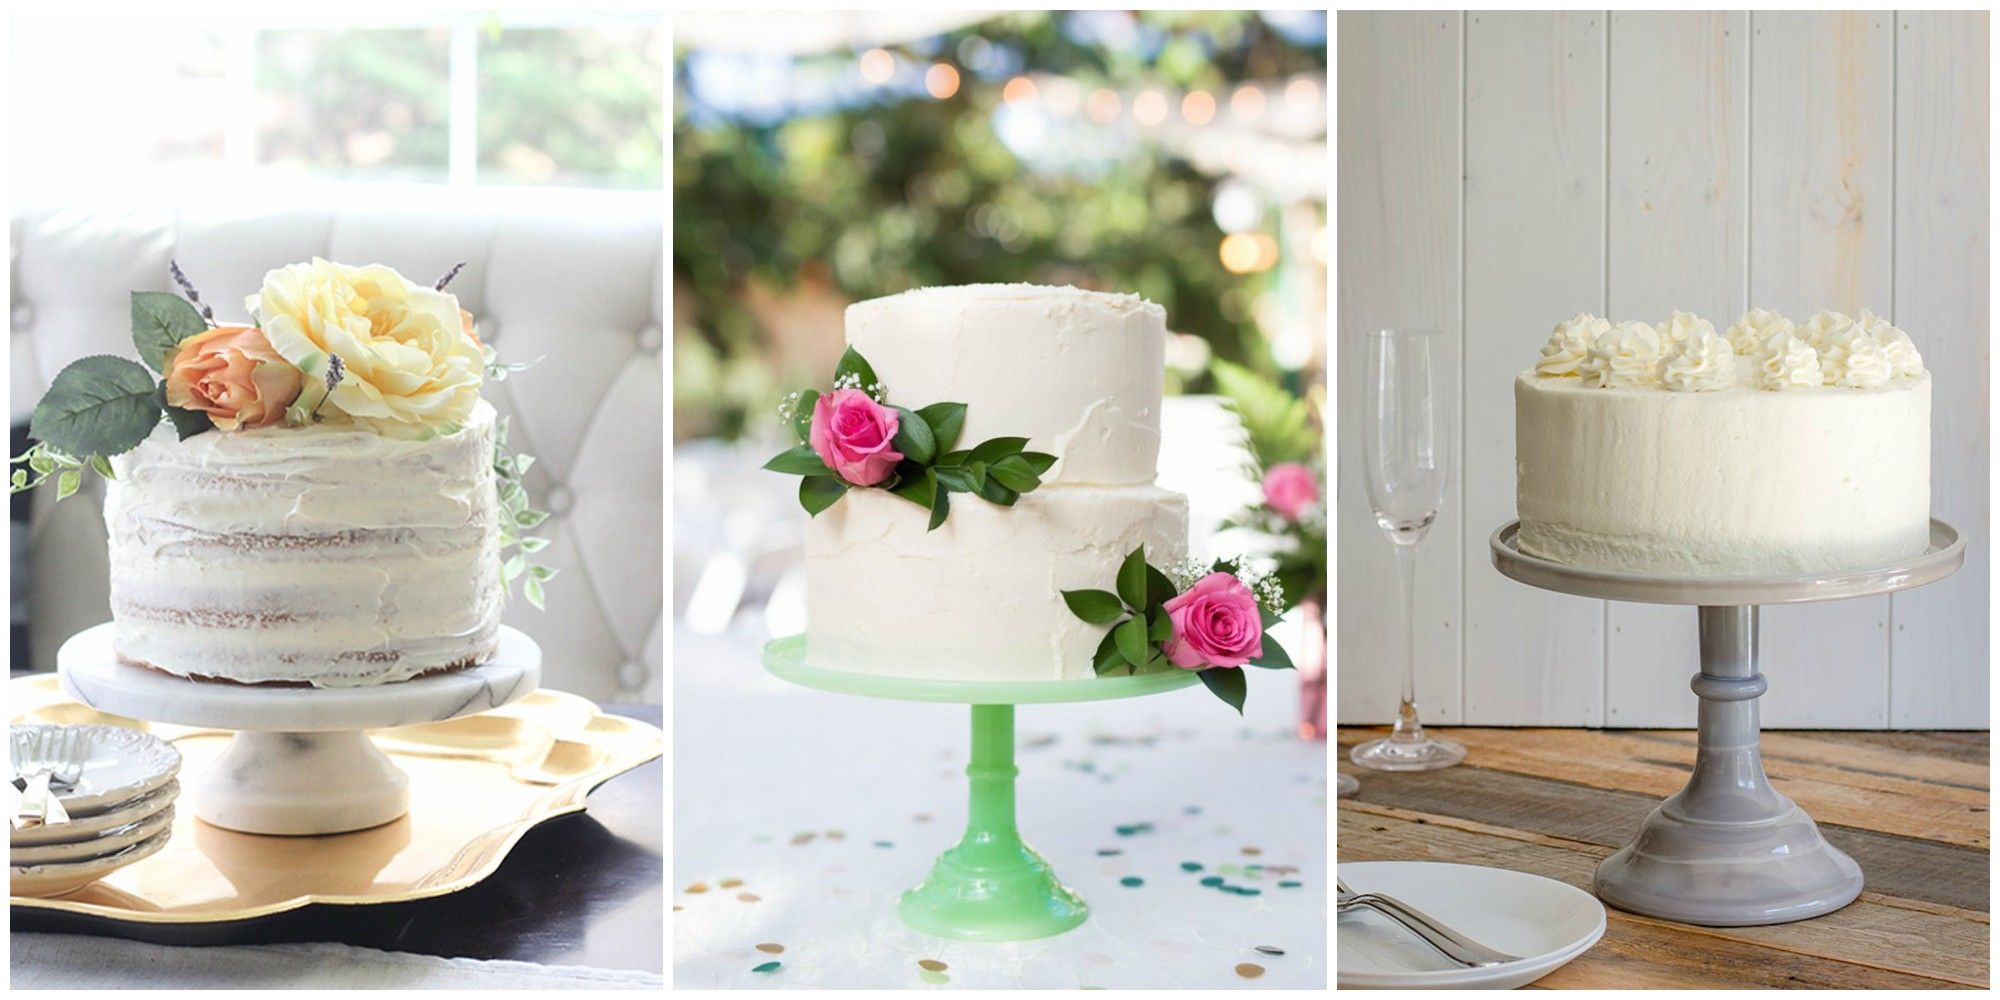 25 Best Homemade Wedding Cake Recipes from Scratch - How to Make a ...